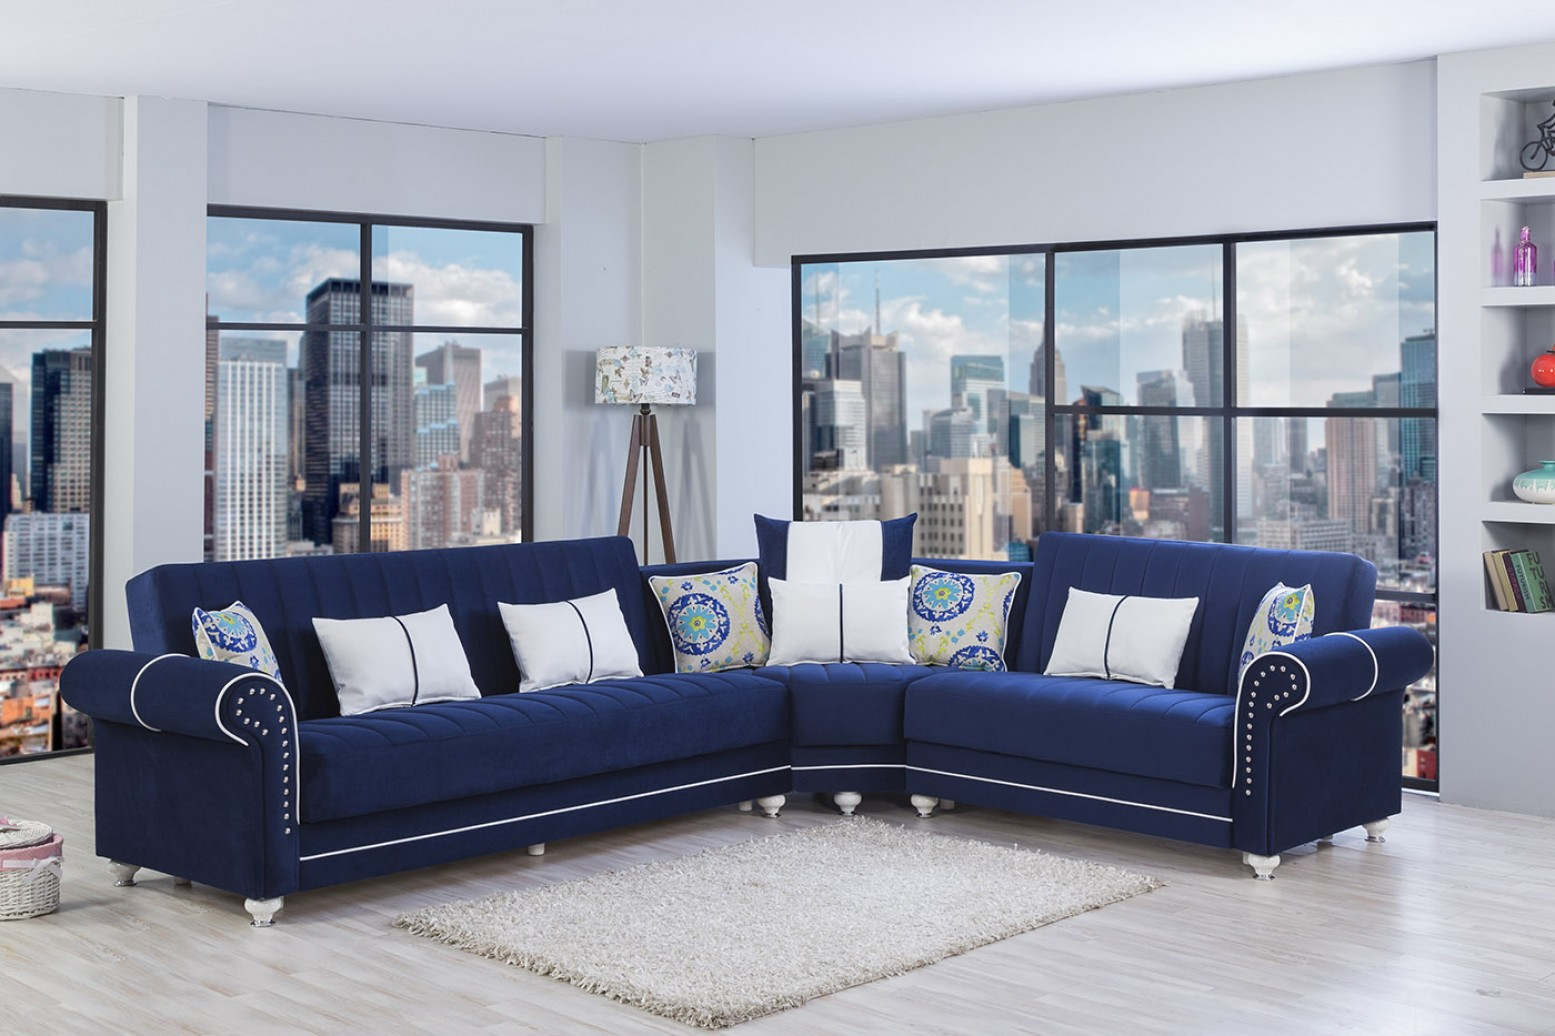 royal home sectional sofa riva dark blue